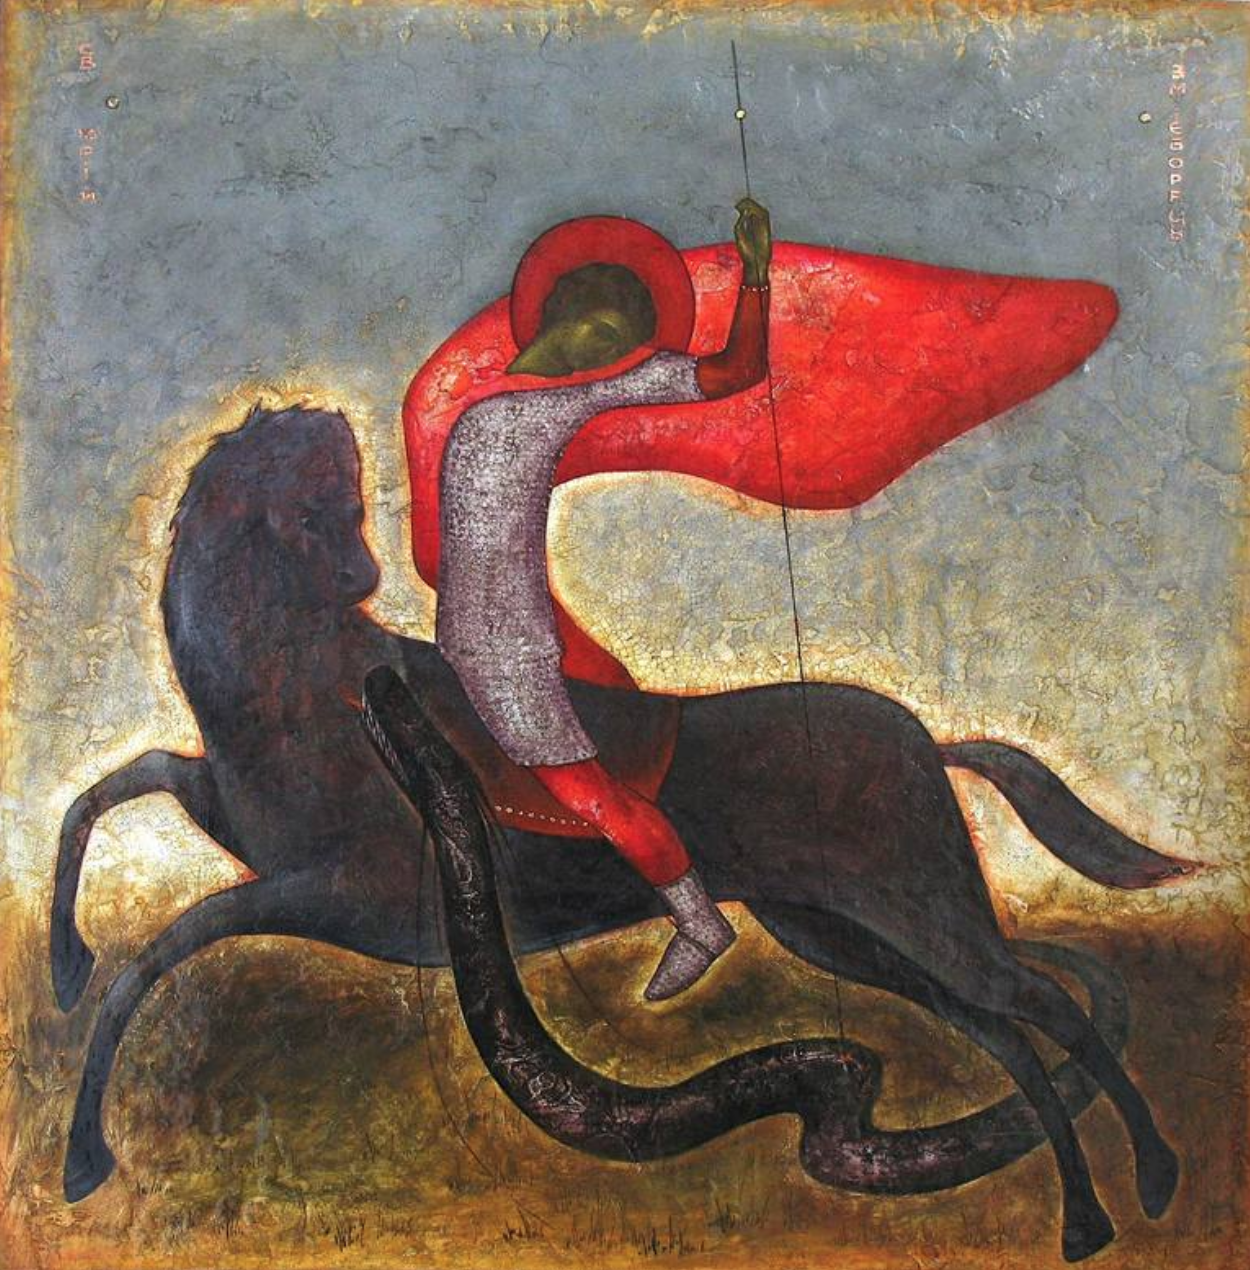 Saint George and the dragon, 2010s, Arsen Birch, Ukraine